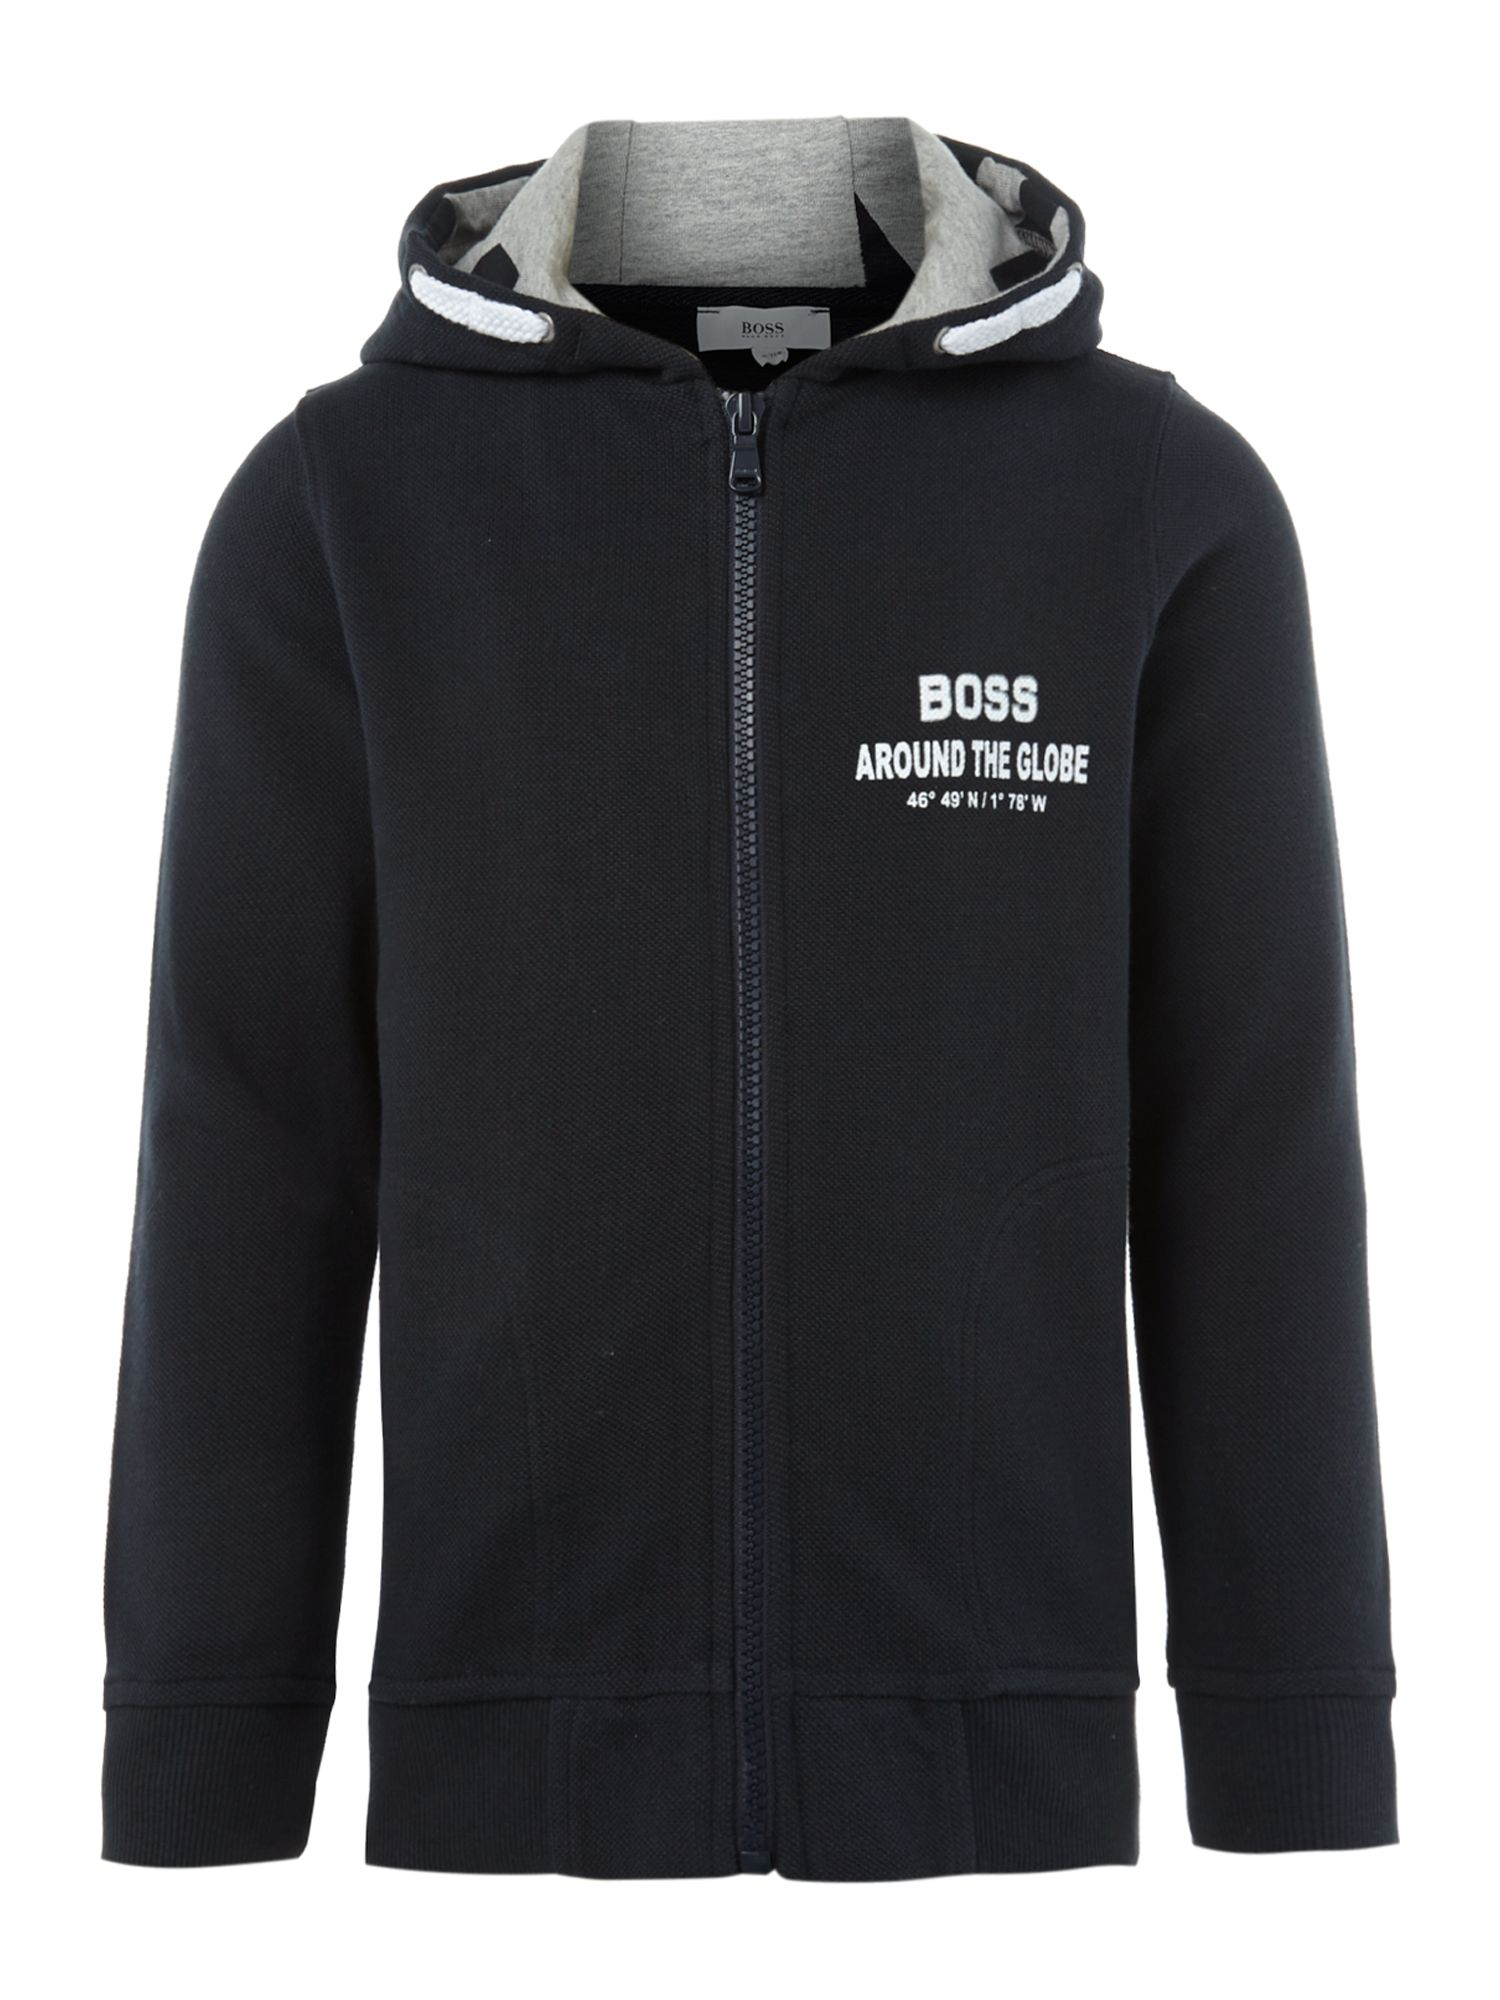 Boy`s pique fleece hooded top